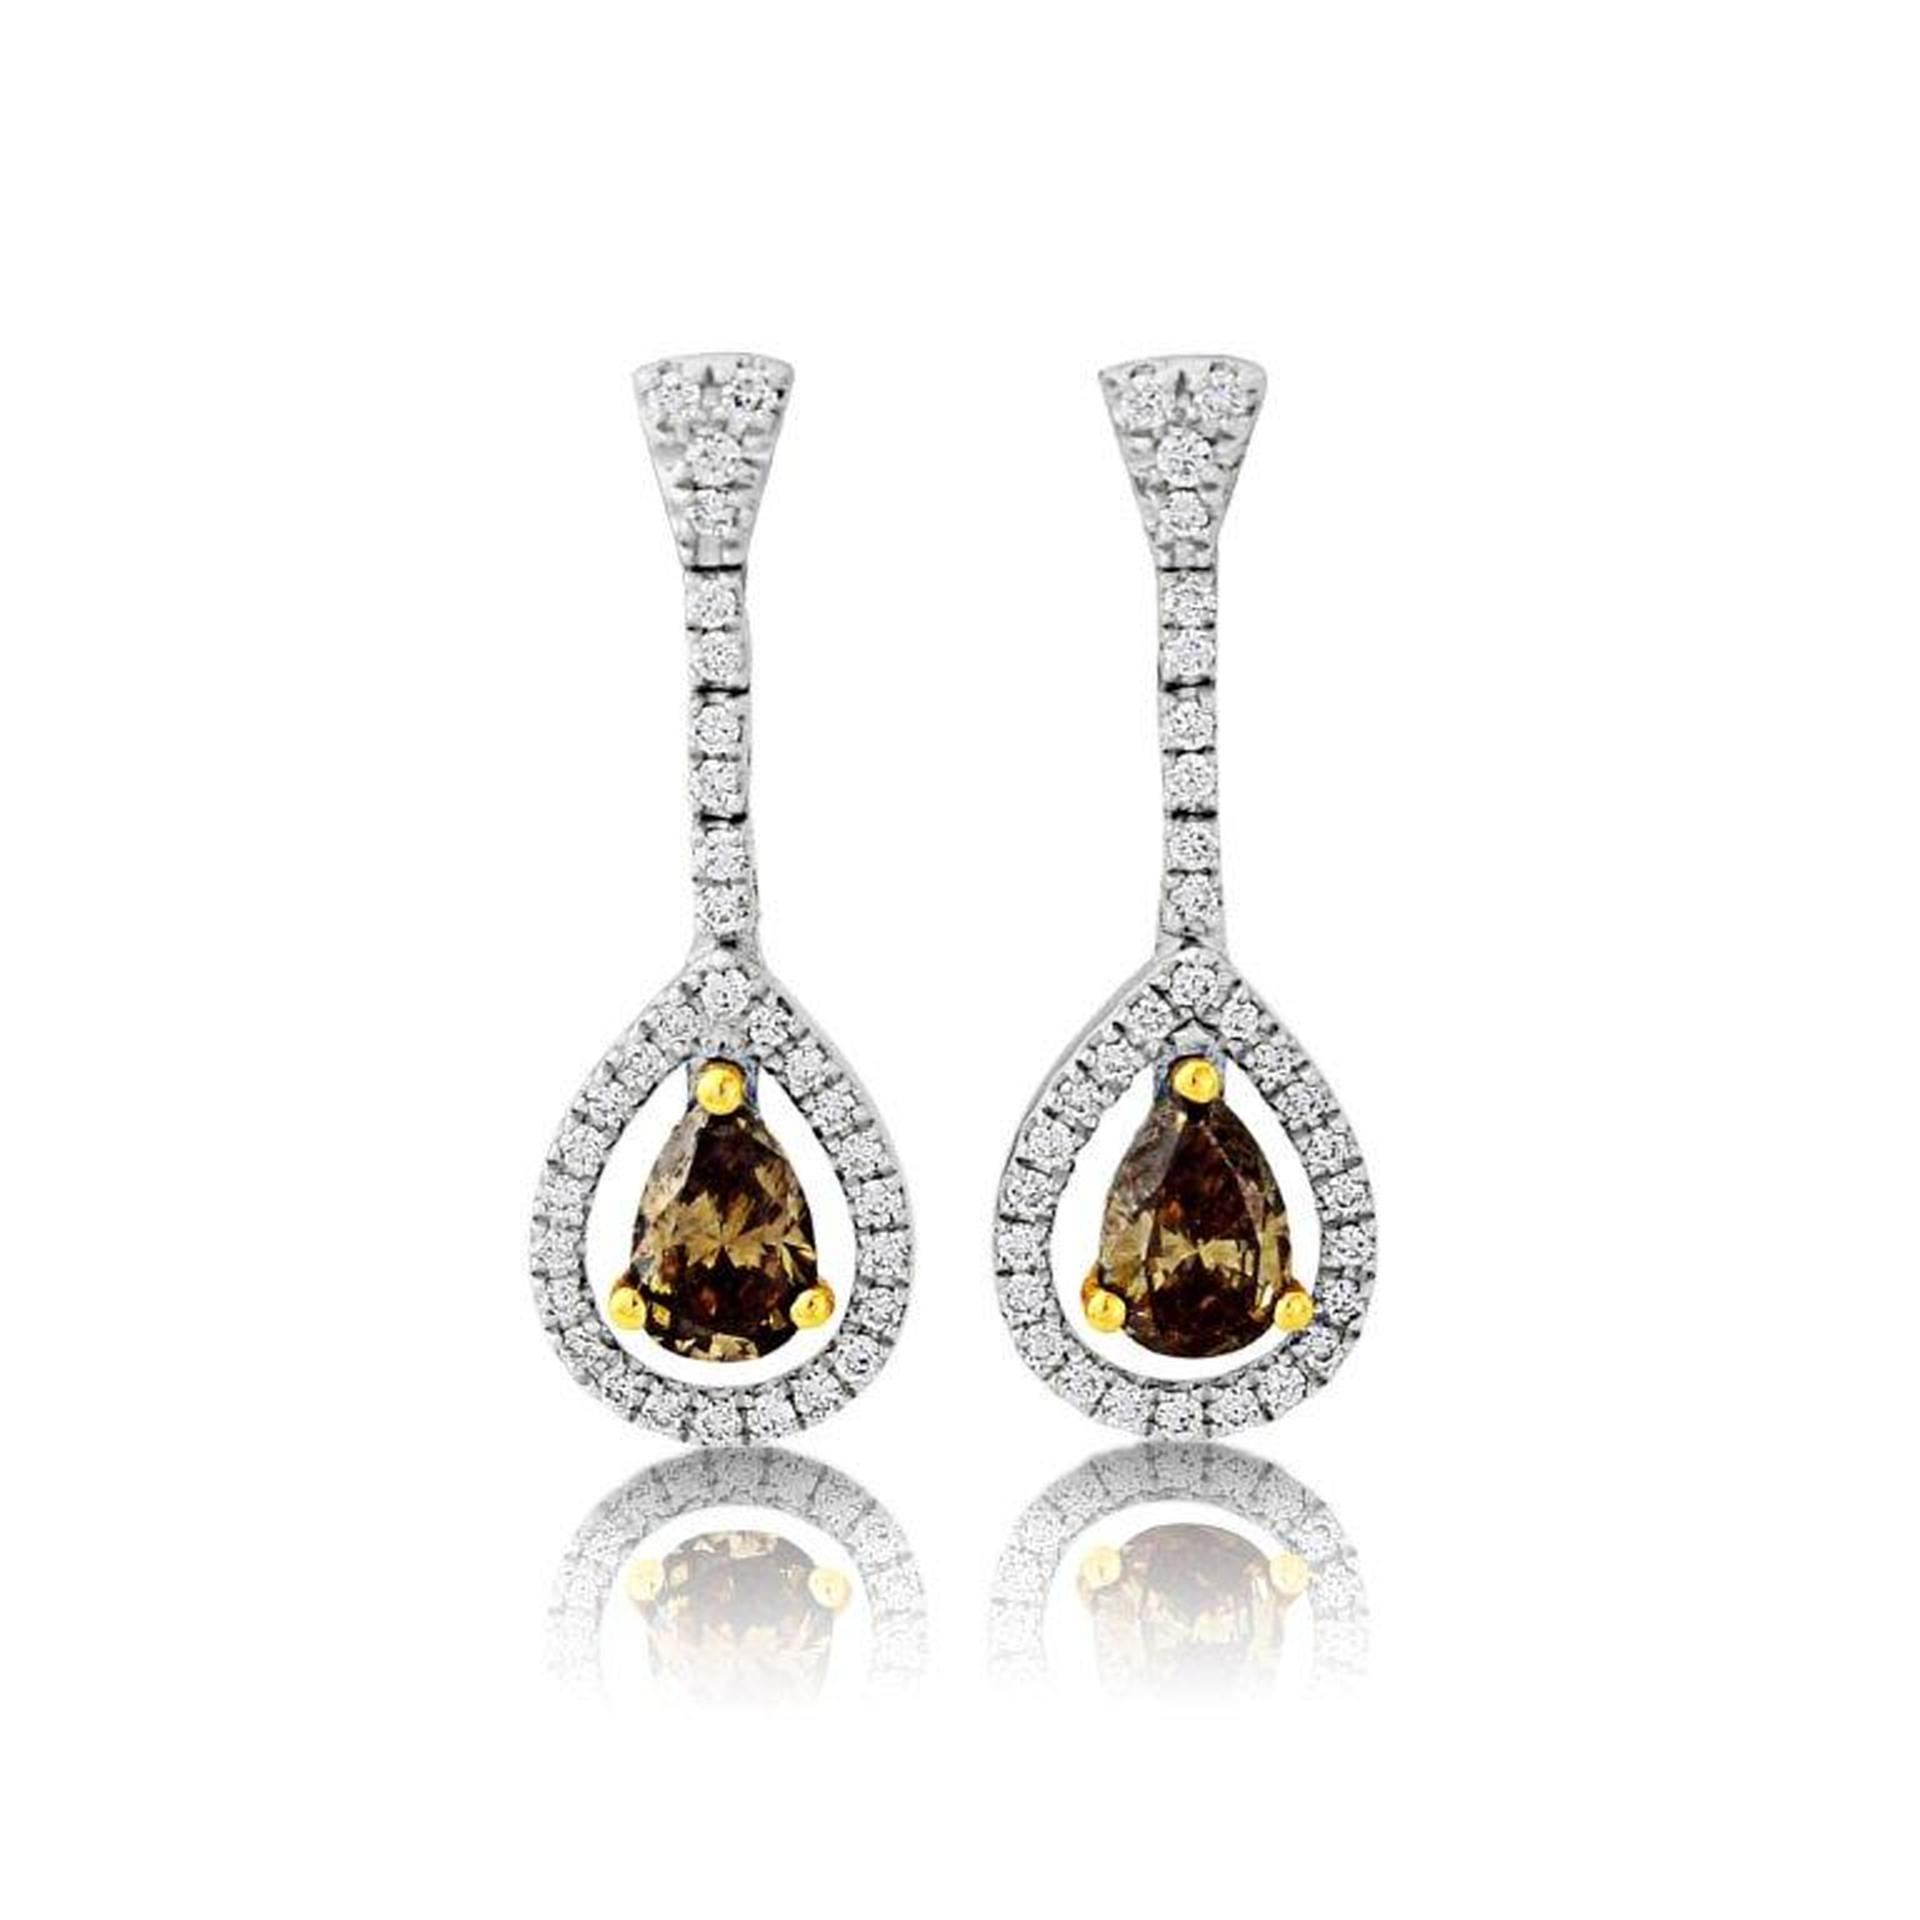 18ct white gold cognac and white diamond drop earrings